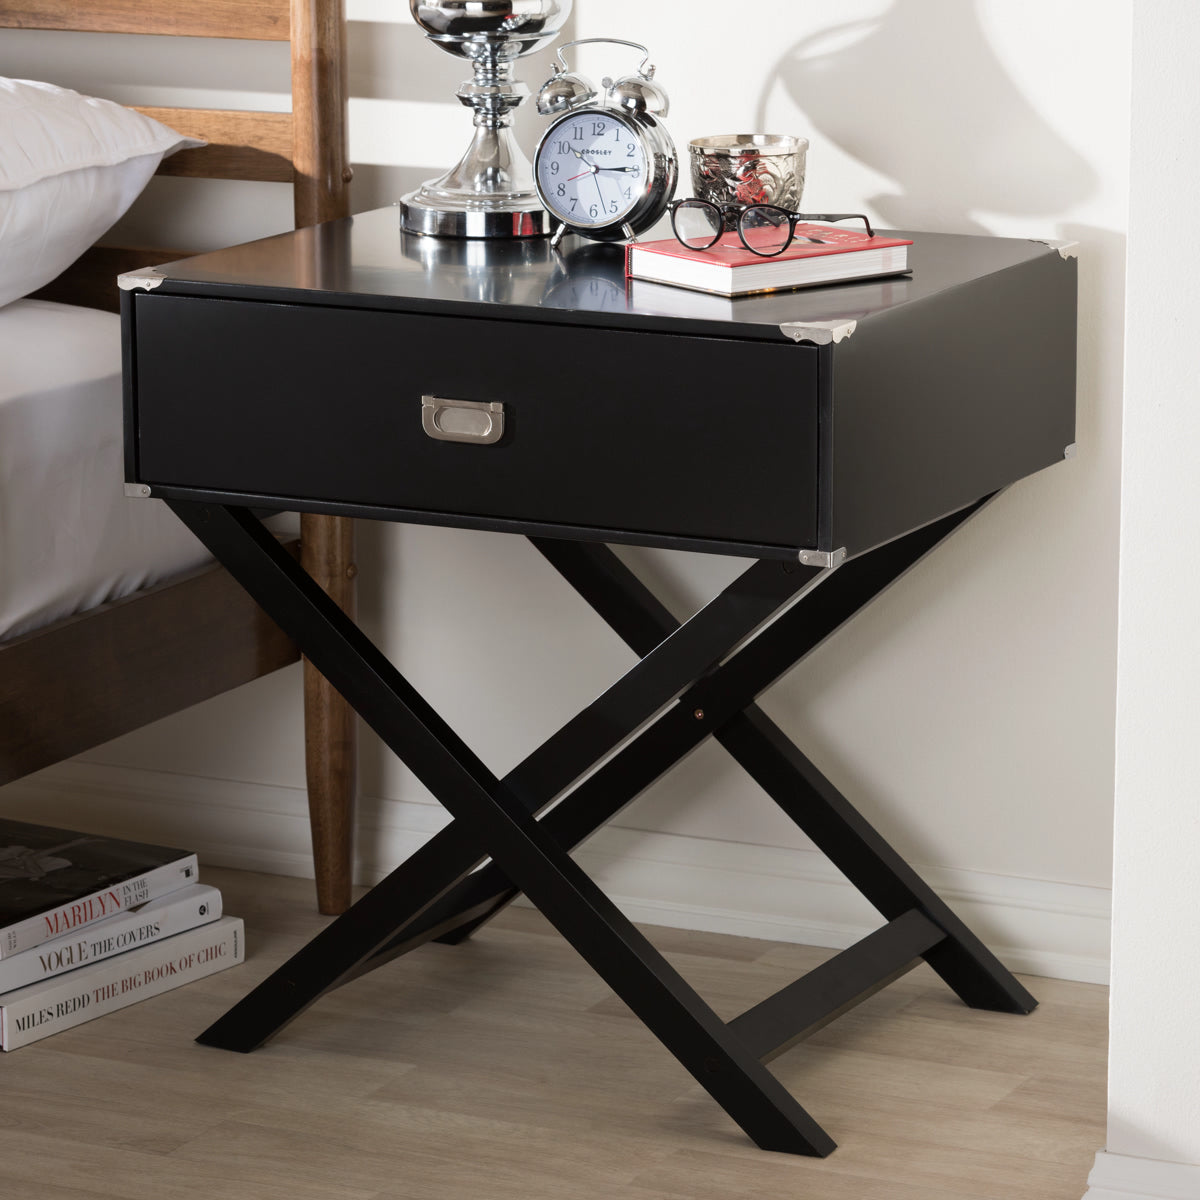 Baxton Studio Curtice Modern And Contemporary Black 1-Drawer Wooden Bedside Table Baxton Studio-nightstands-Minimal And Modern - 1